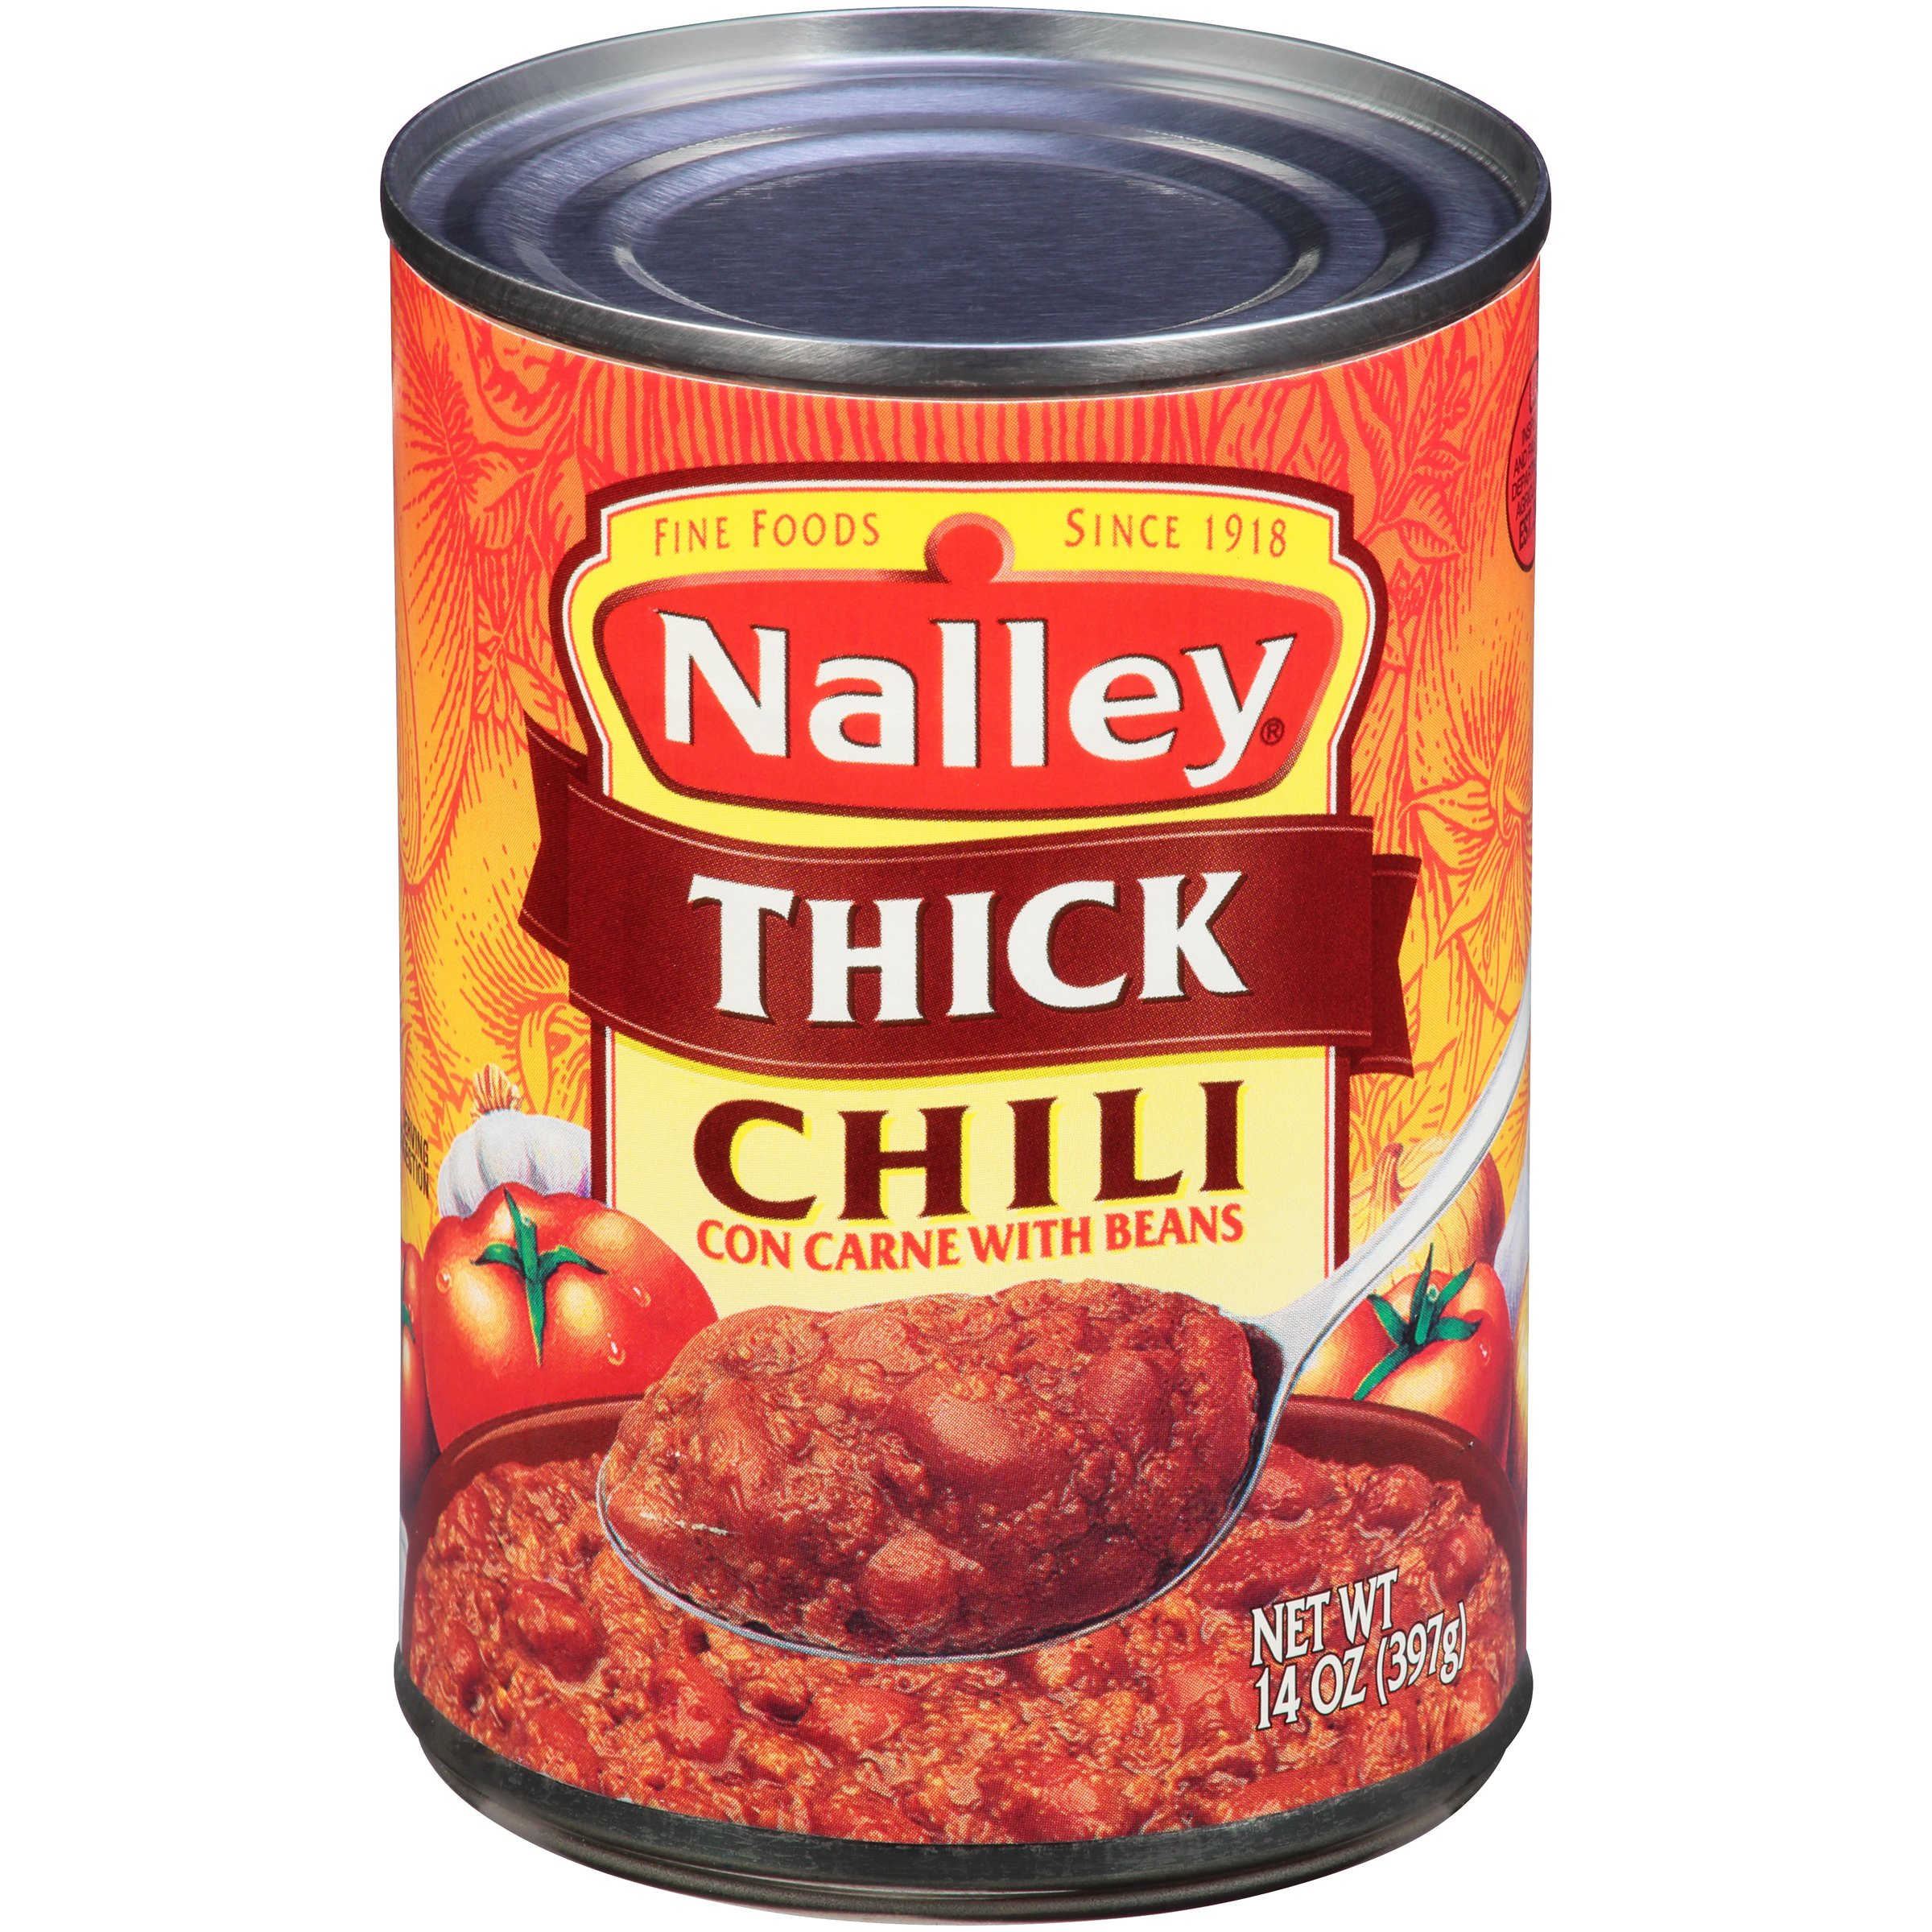 (6 Pack) Nalley Thick Chili Con Carne With Beans, 15 Oz